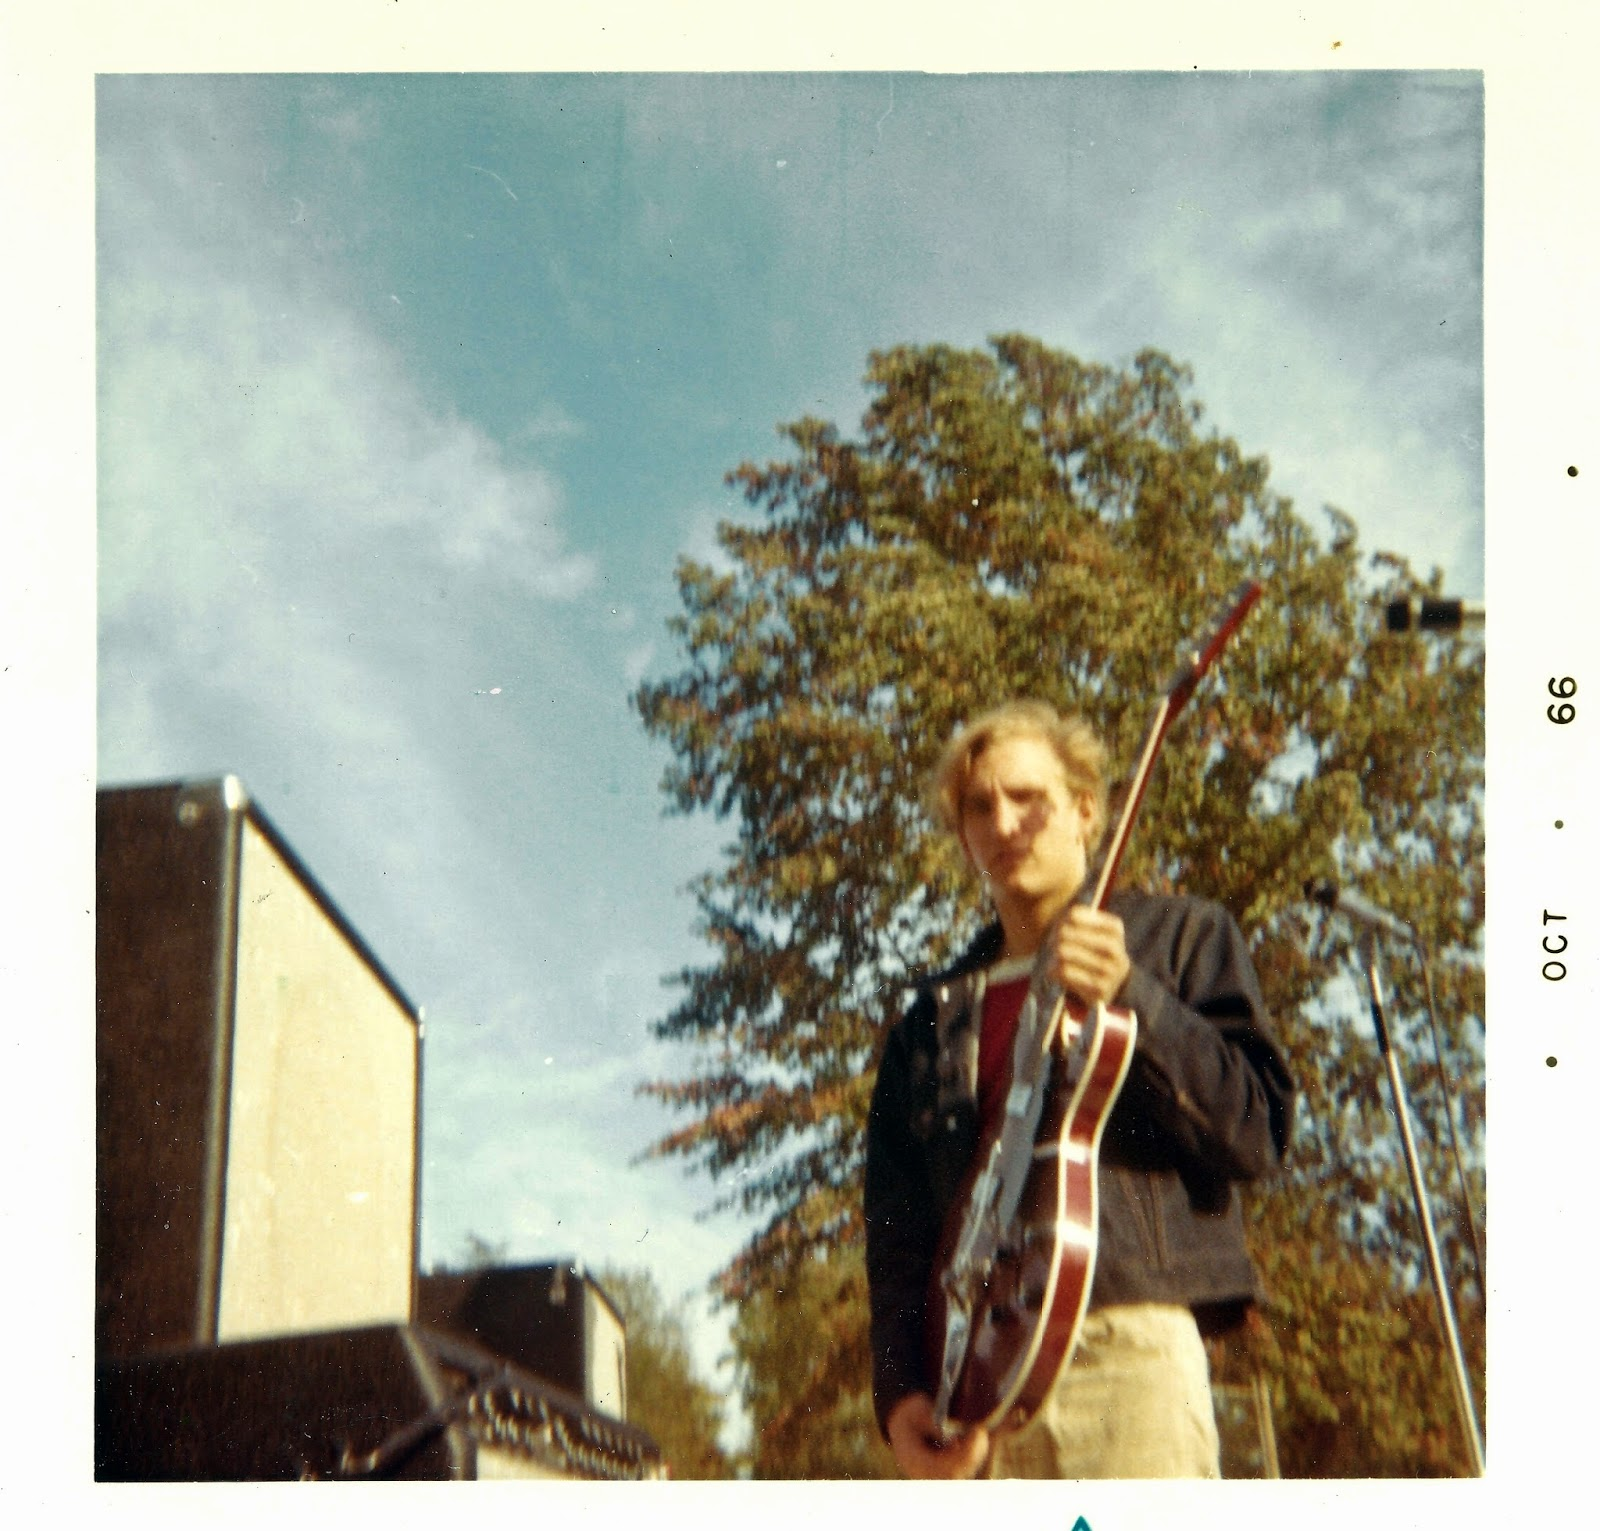 Dr  Rock & Roll: Joe Walsh's Measles on the Kent State